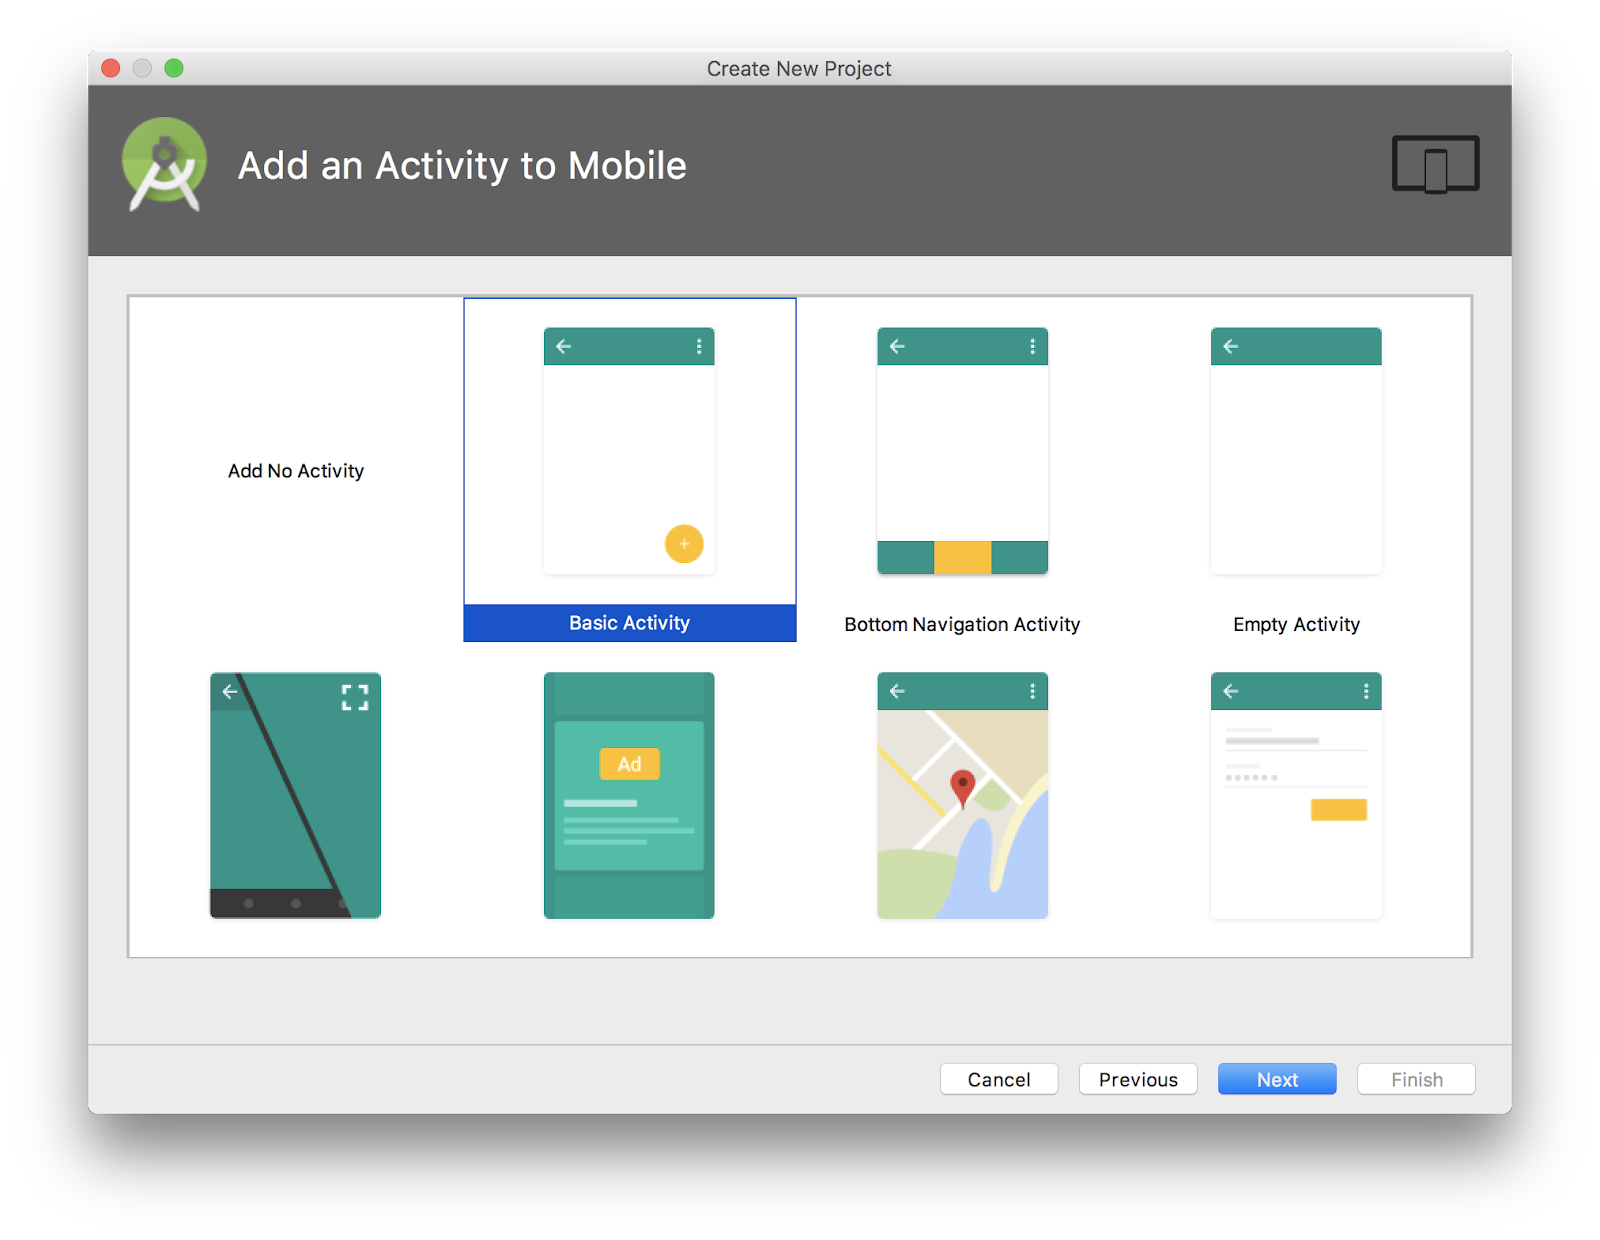 Add a Basic Activity to your app